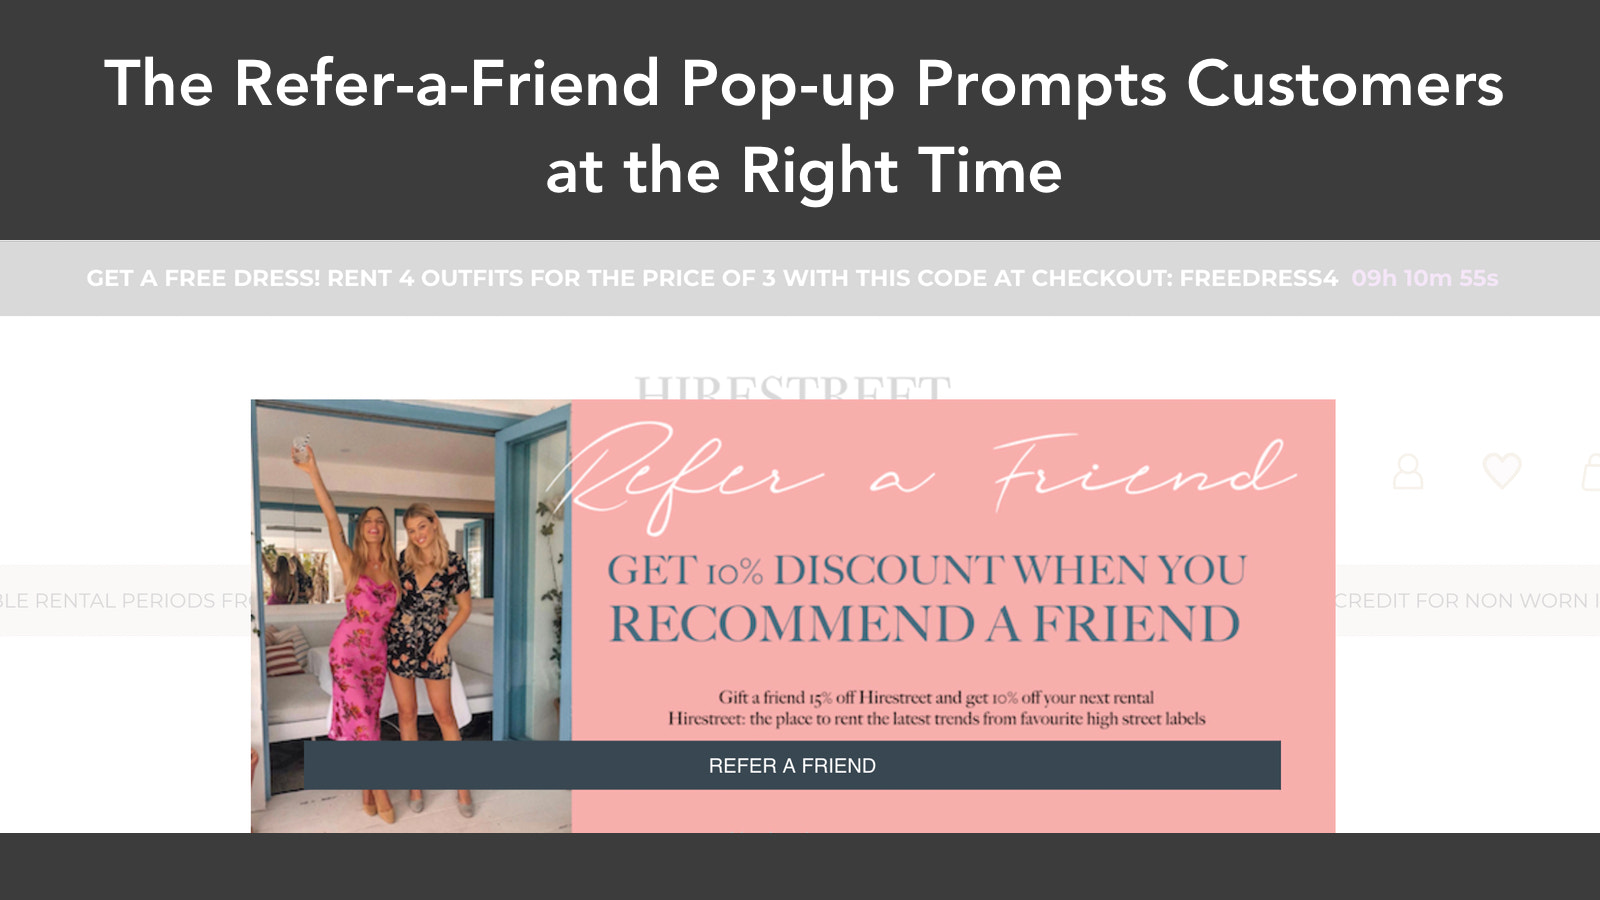 Referral Popup Prompts Customers at the Right Time